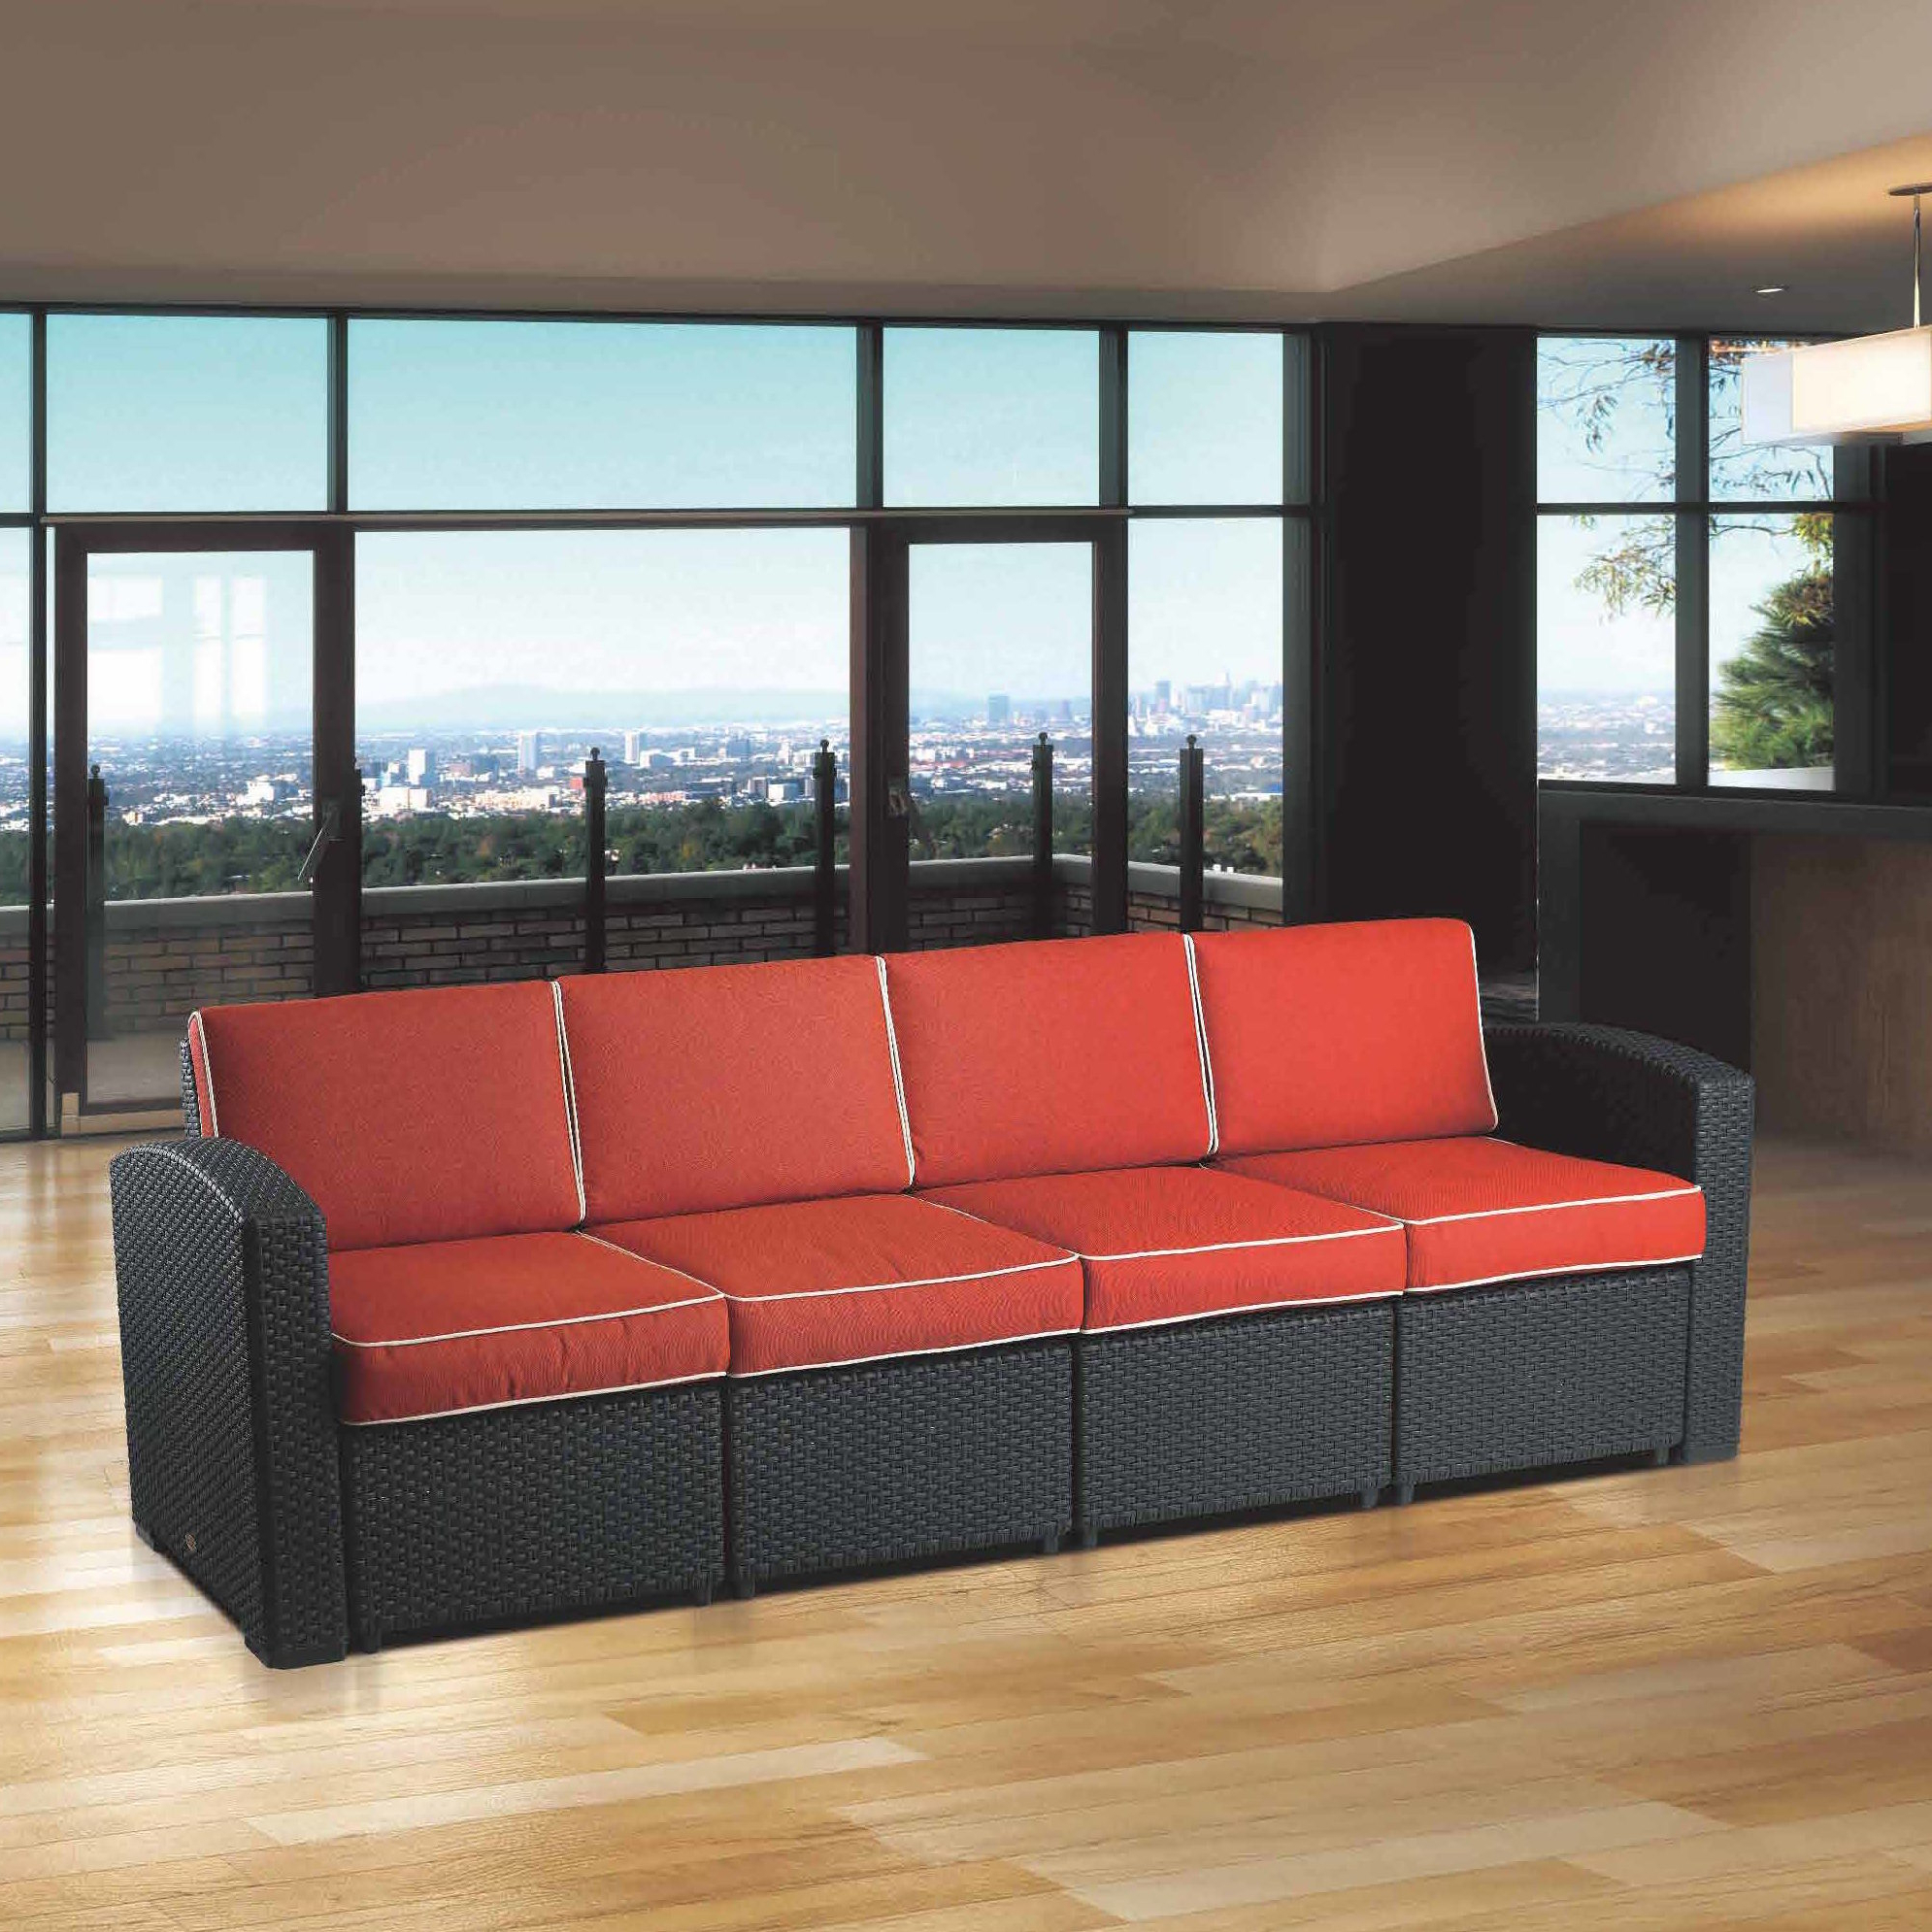 Loggins Patio Sofas With Cushions With Recent Brayden Studio Loggins Patio Sofa With Cushions & Reviews (View 2 of 20)